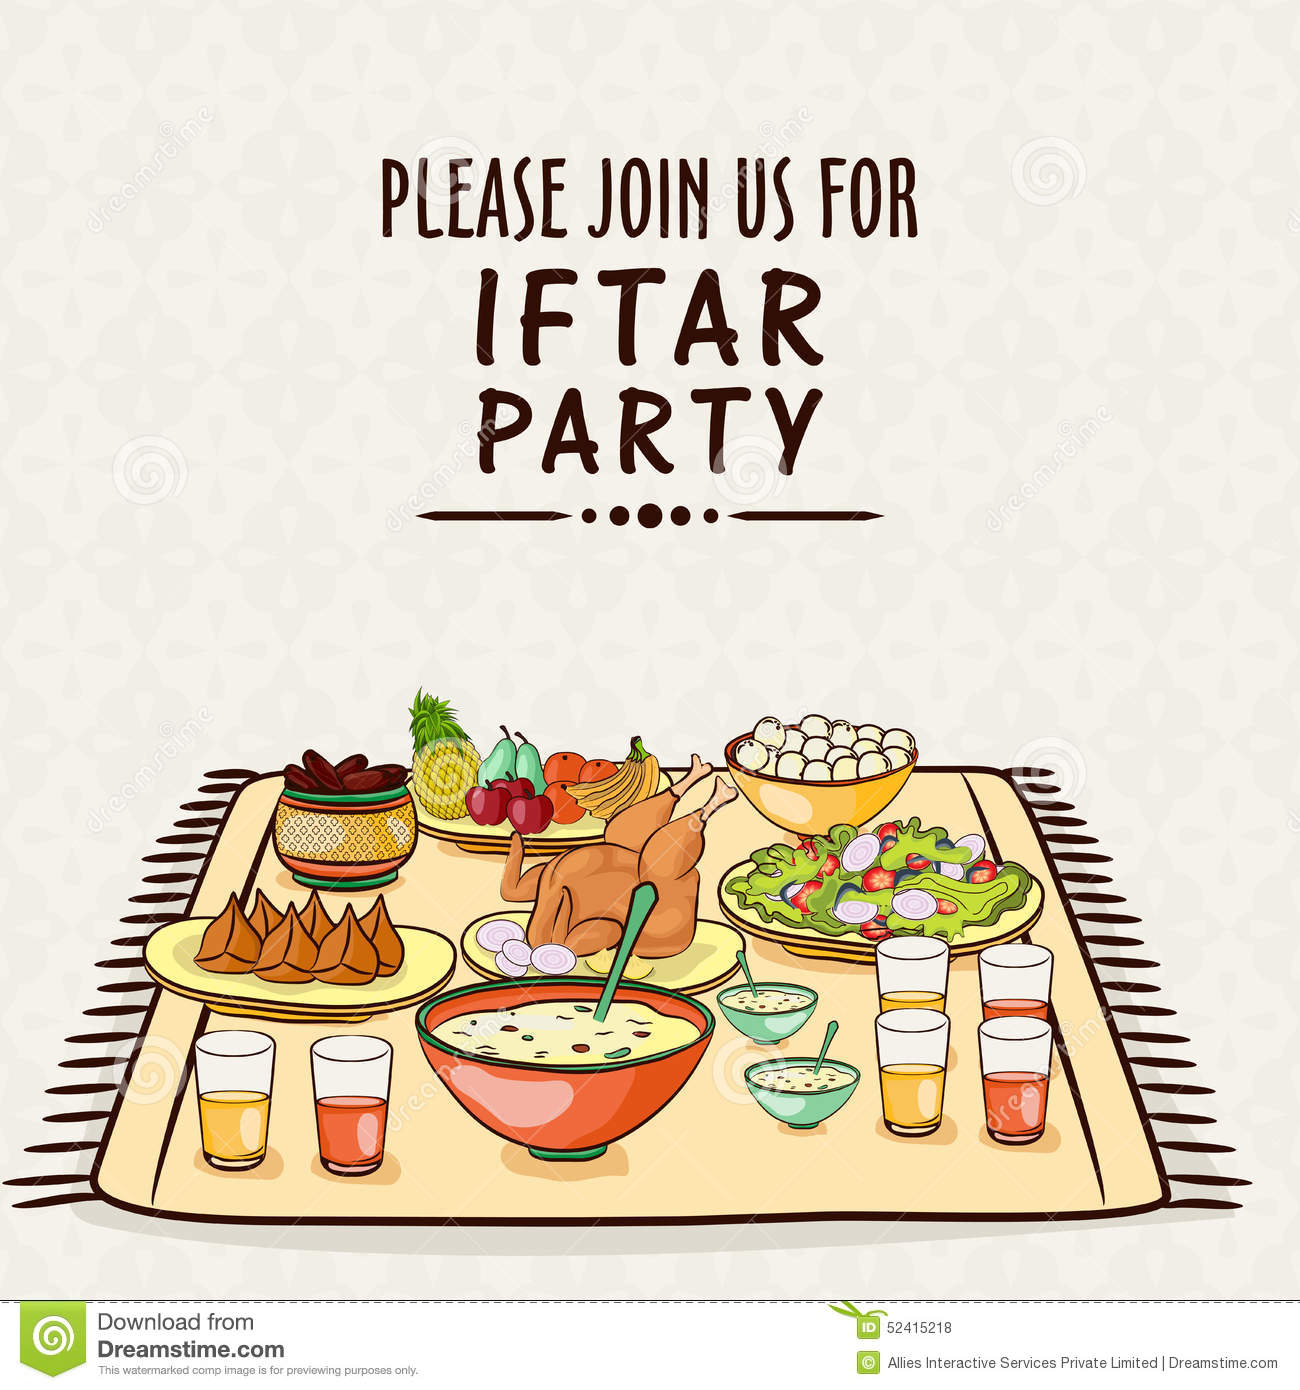 Invitation card for ramadan kareem iftar party celebration stock invitation card for ramadan kareem iftar party celebration stopboris Image collections